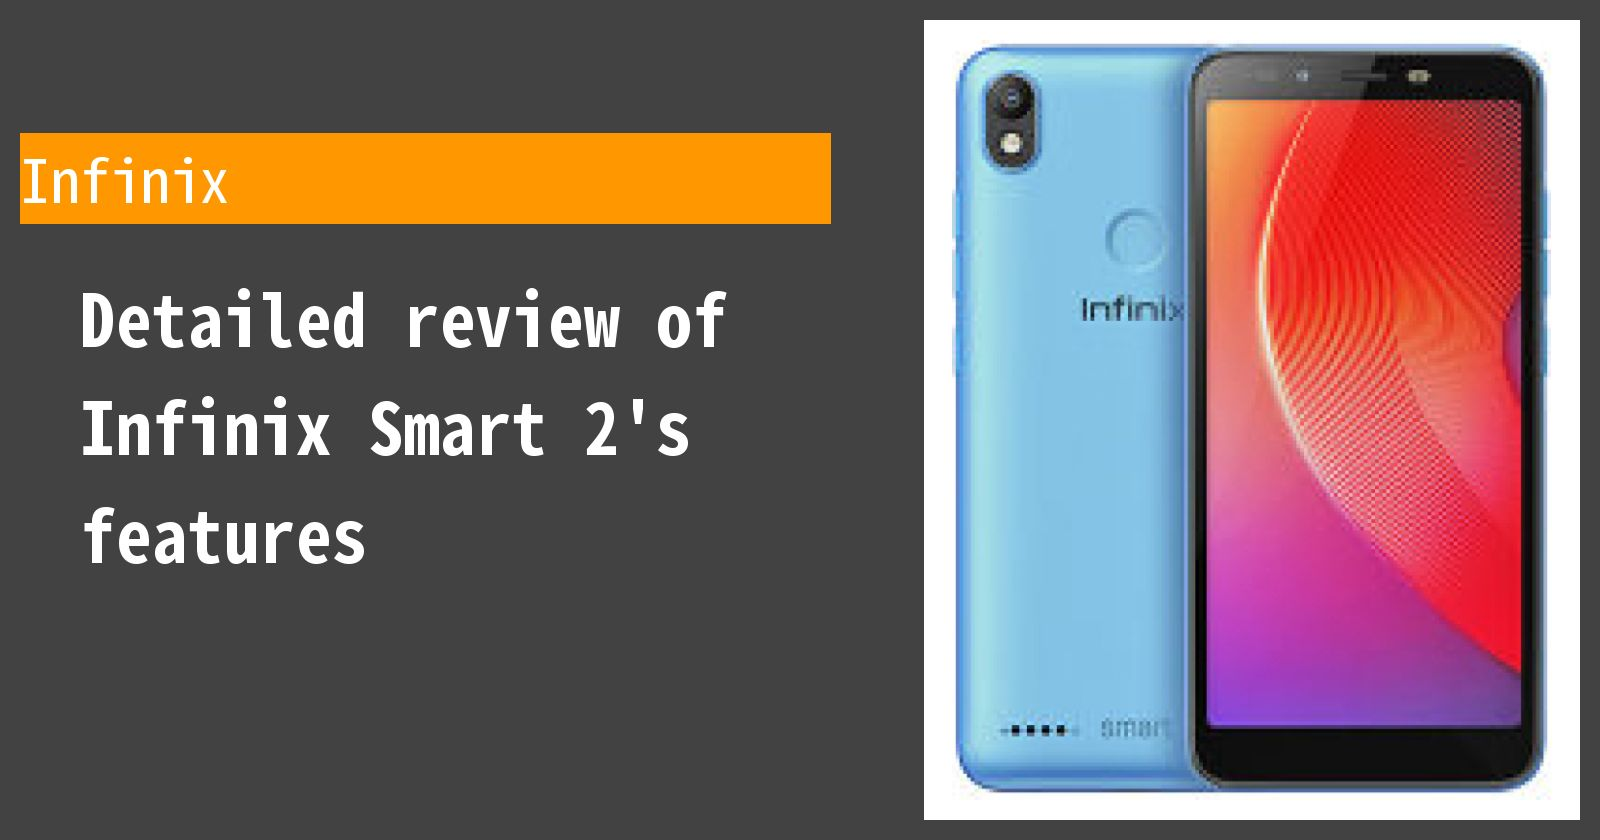 Detailed review of Infinix Smart 2's features